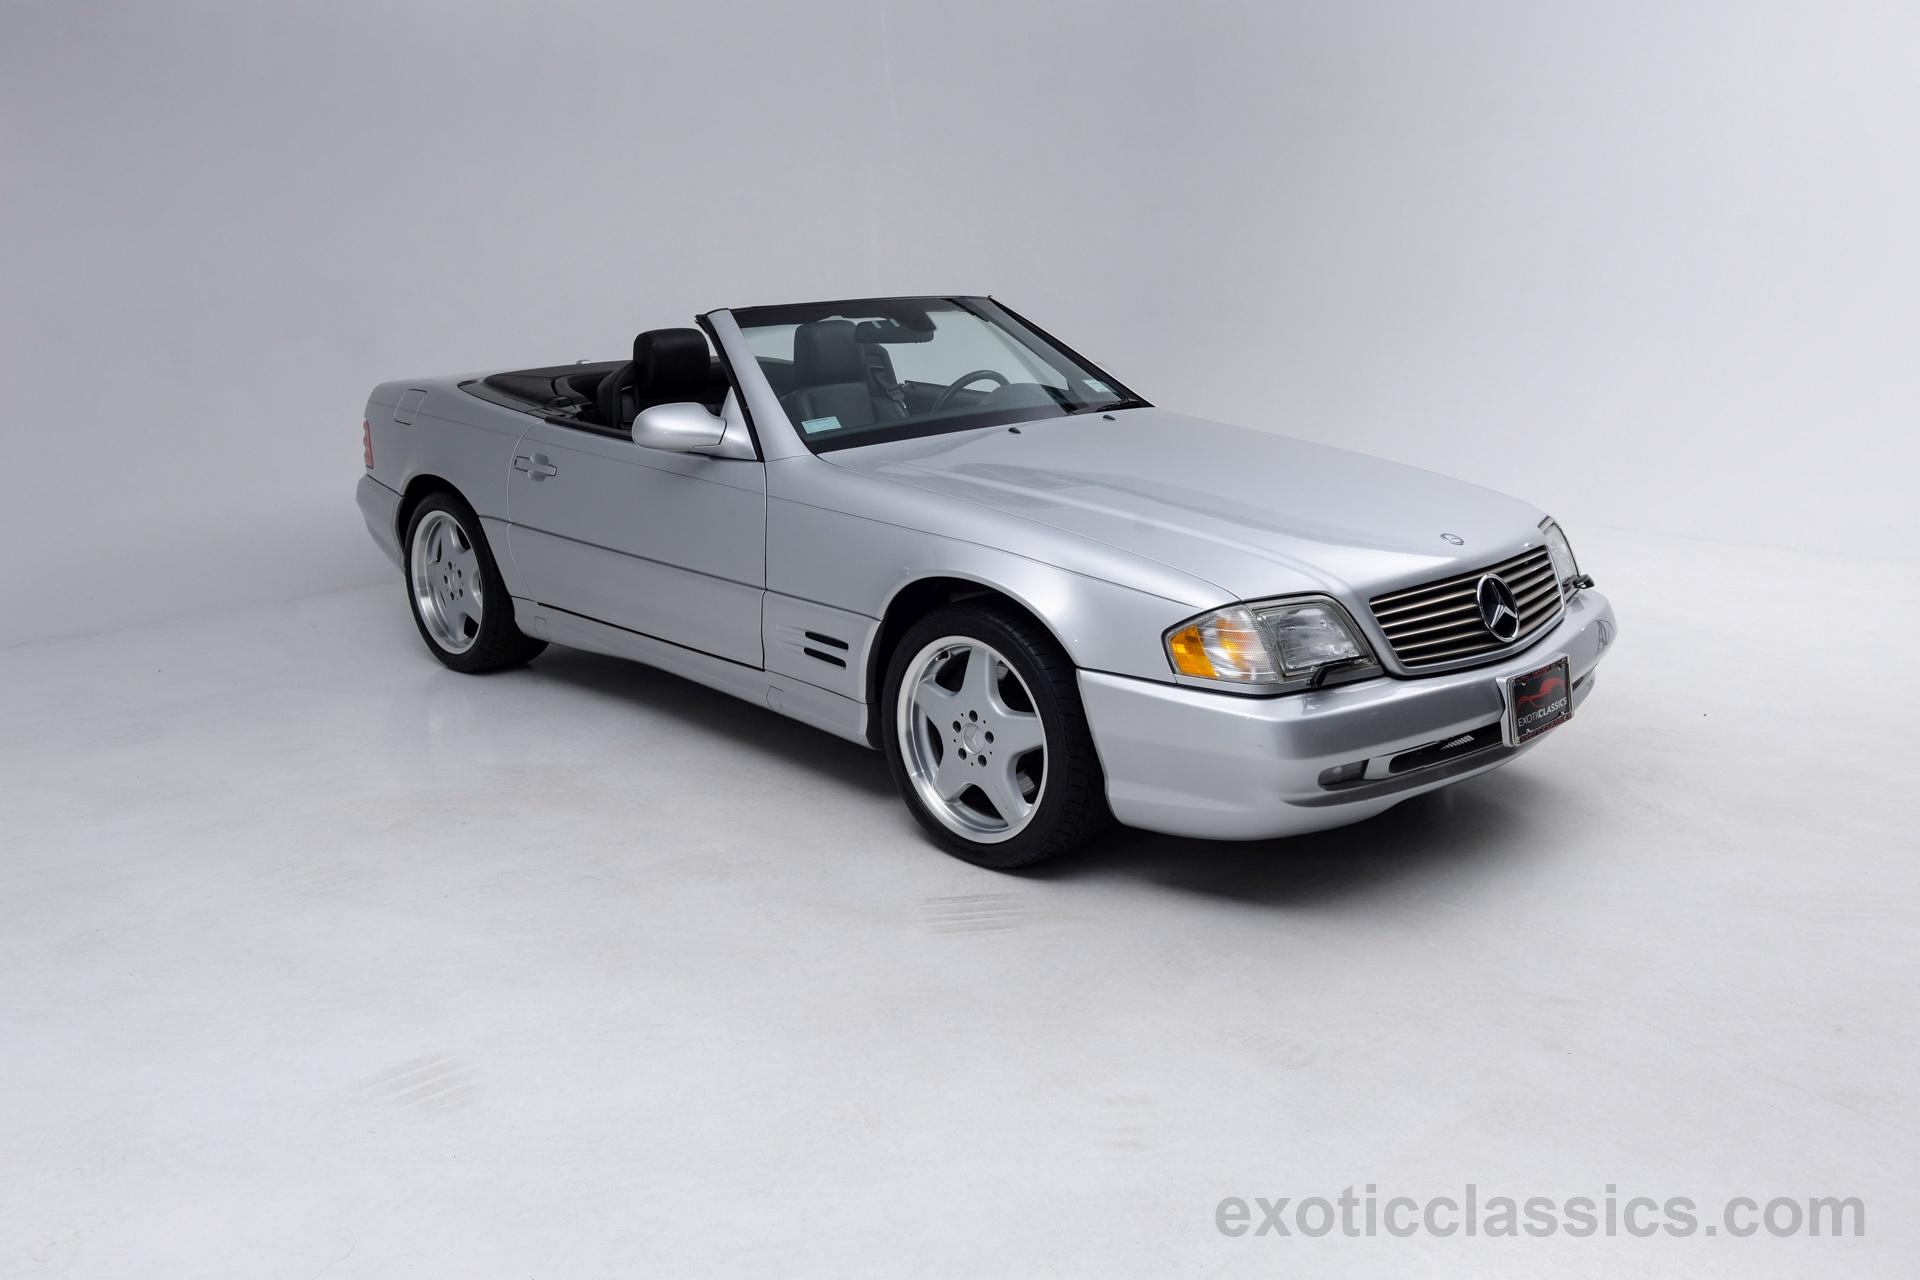 2001 mercedes benz sl500 sl500 exotic classic car for Mercedes benz nyc